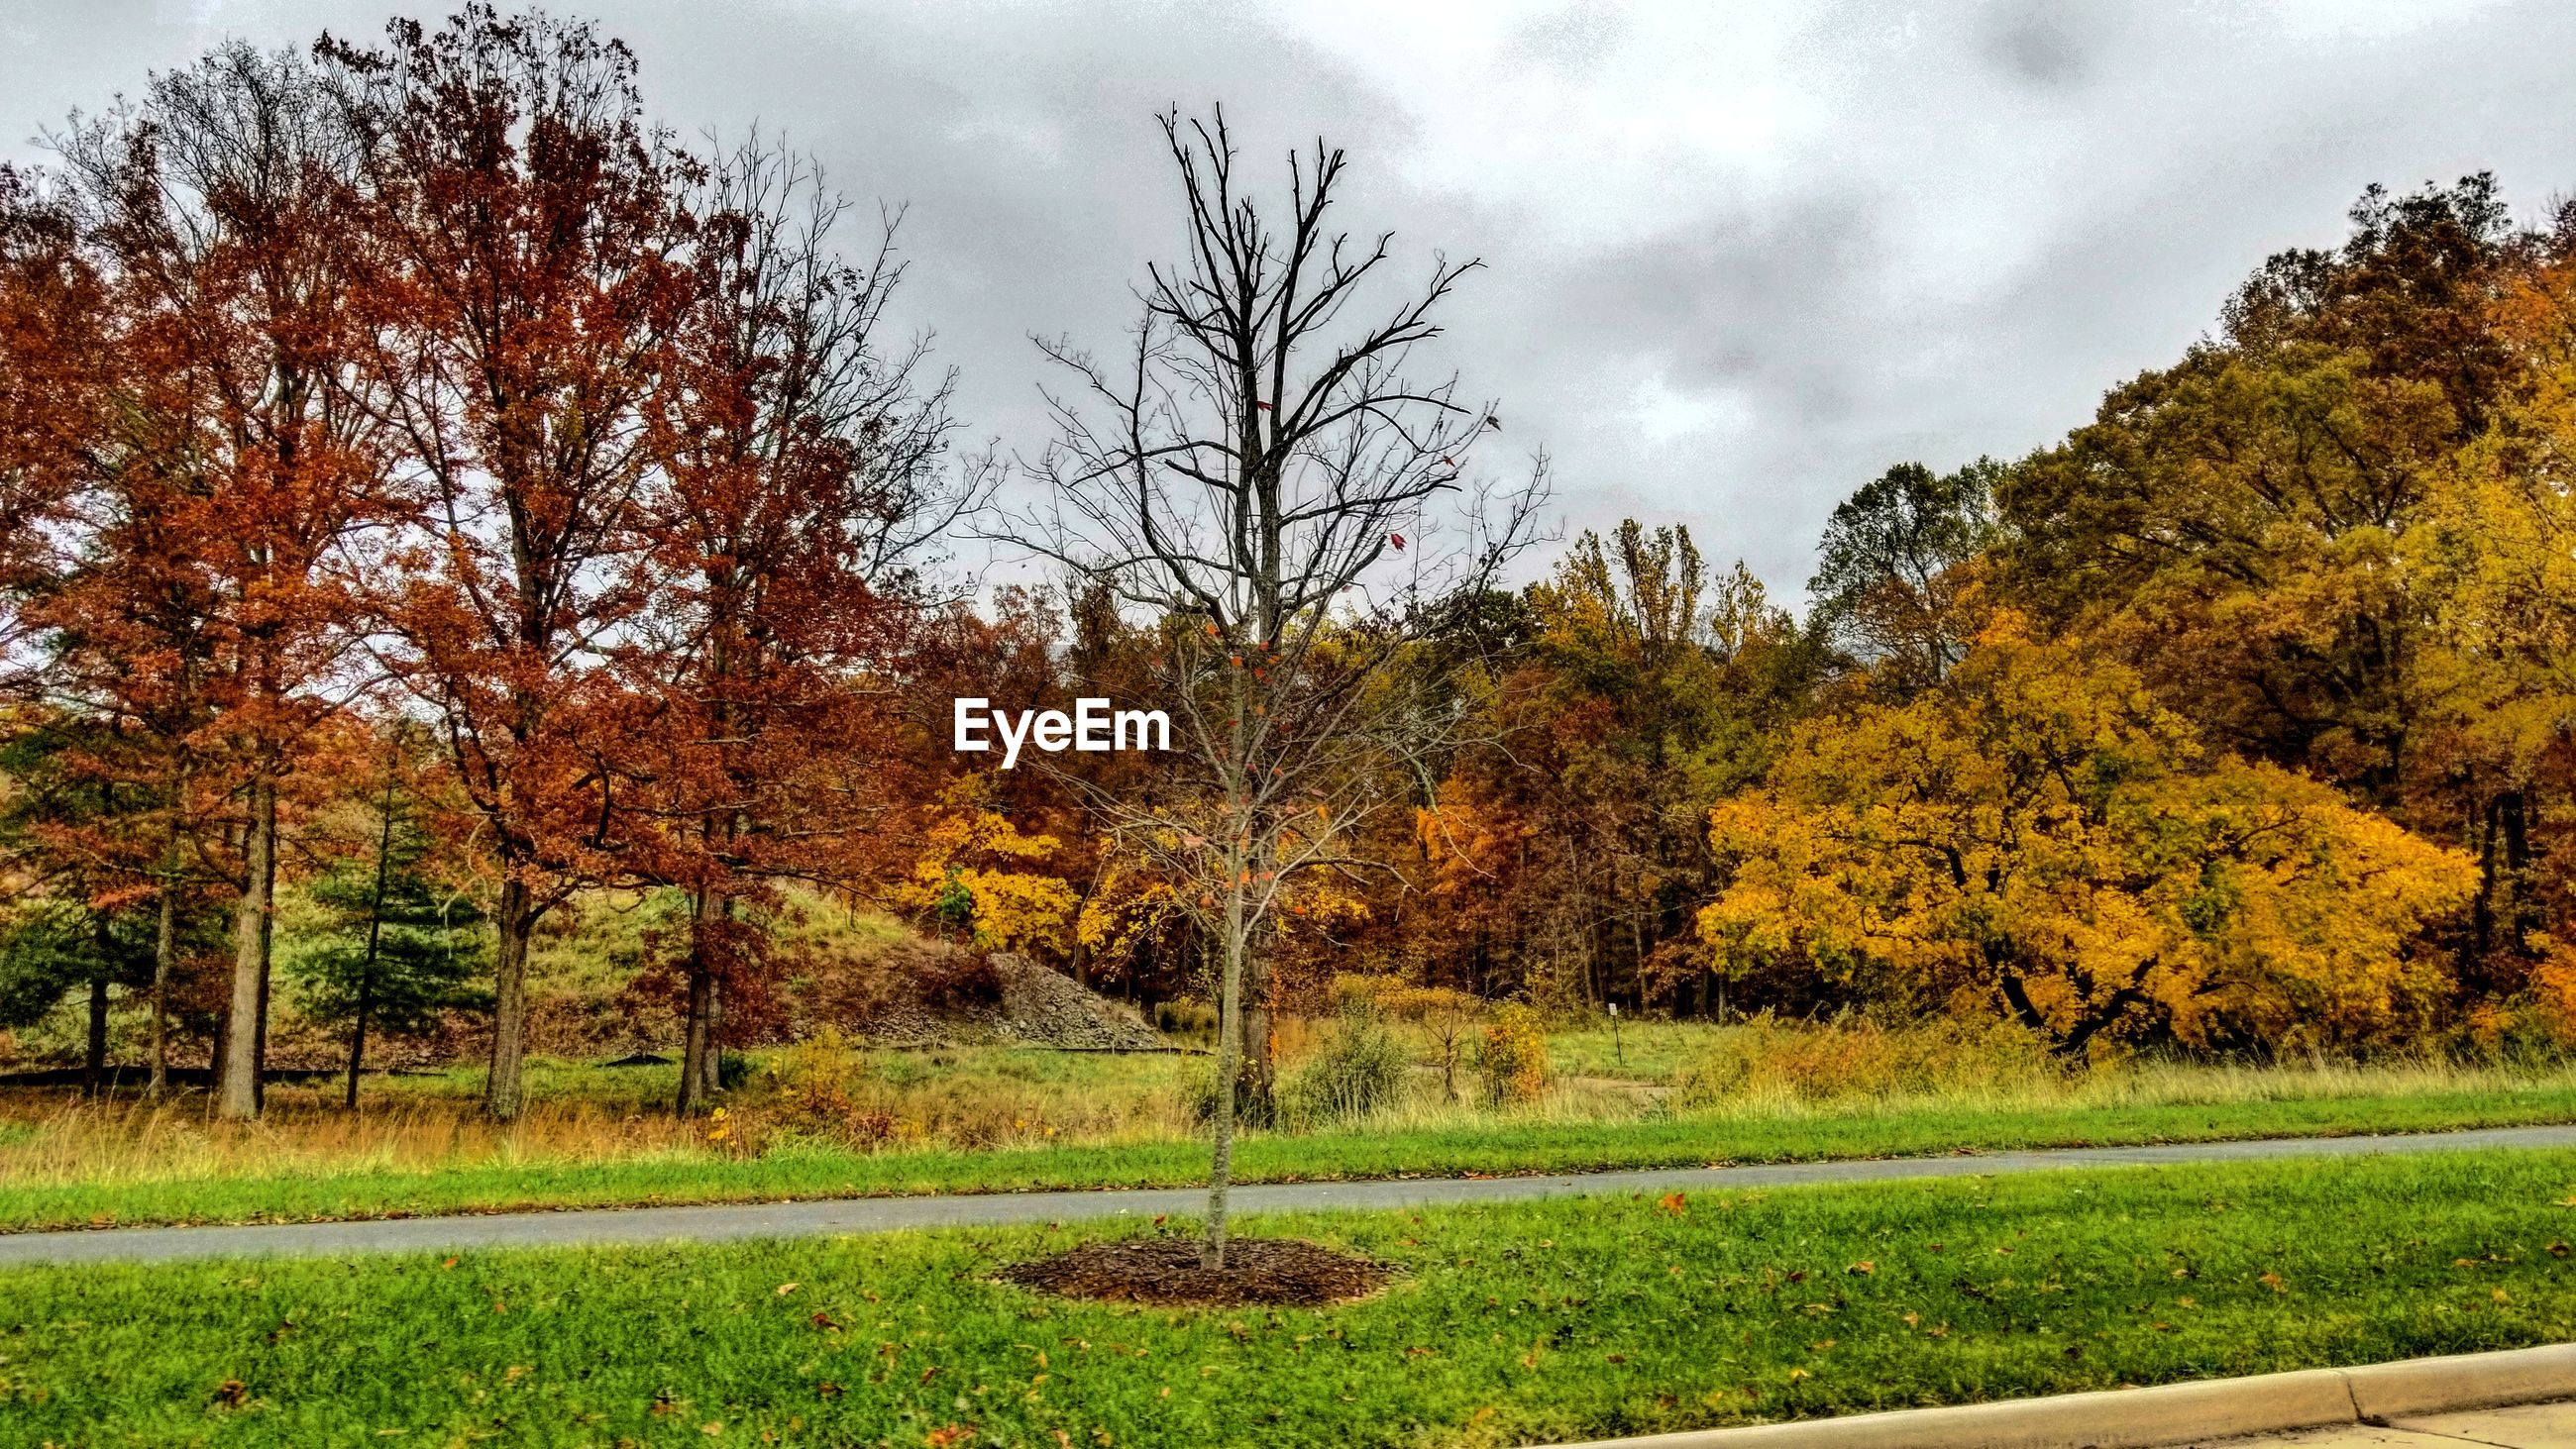 SCENIC VIEW OF TREES DURING AUTUMN